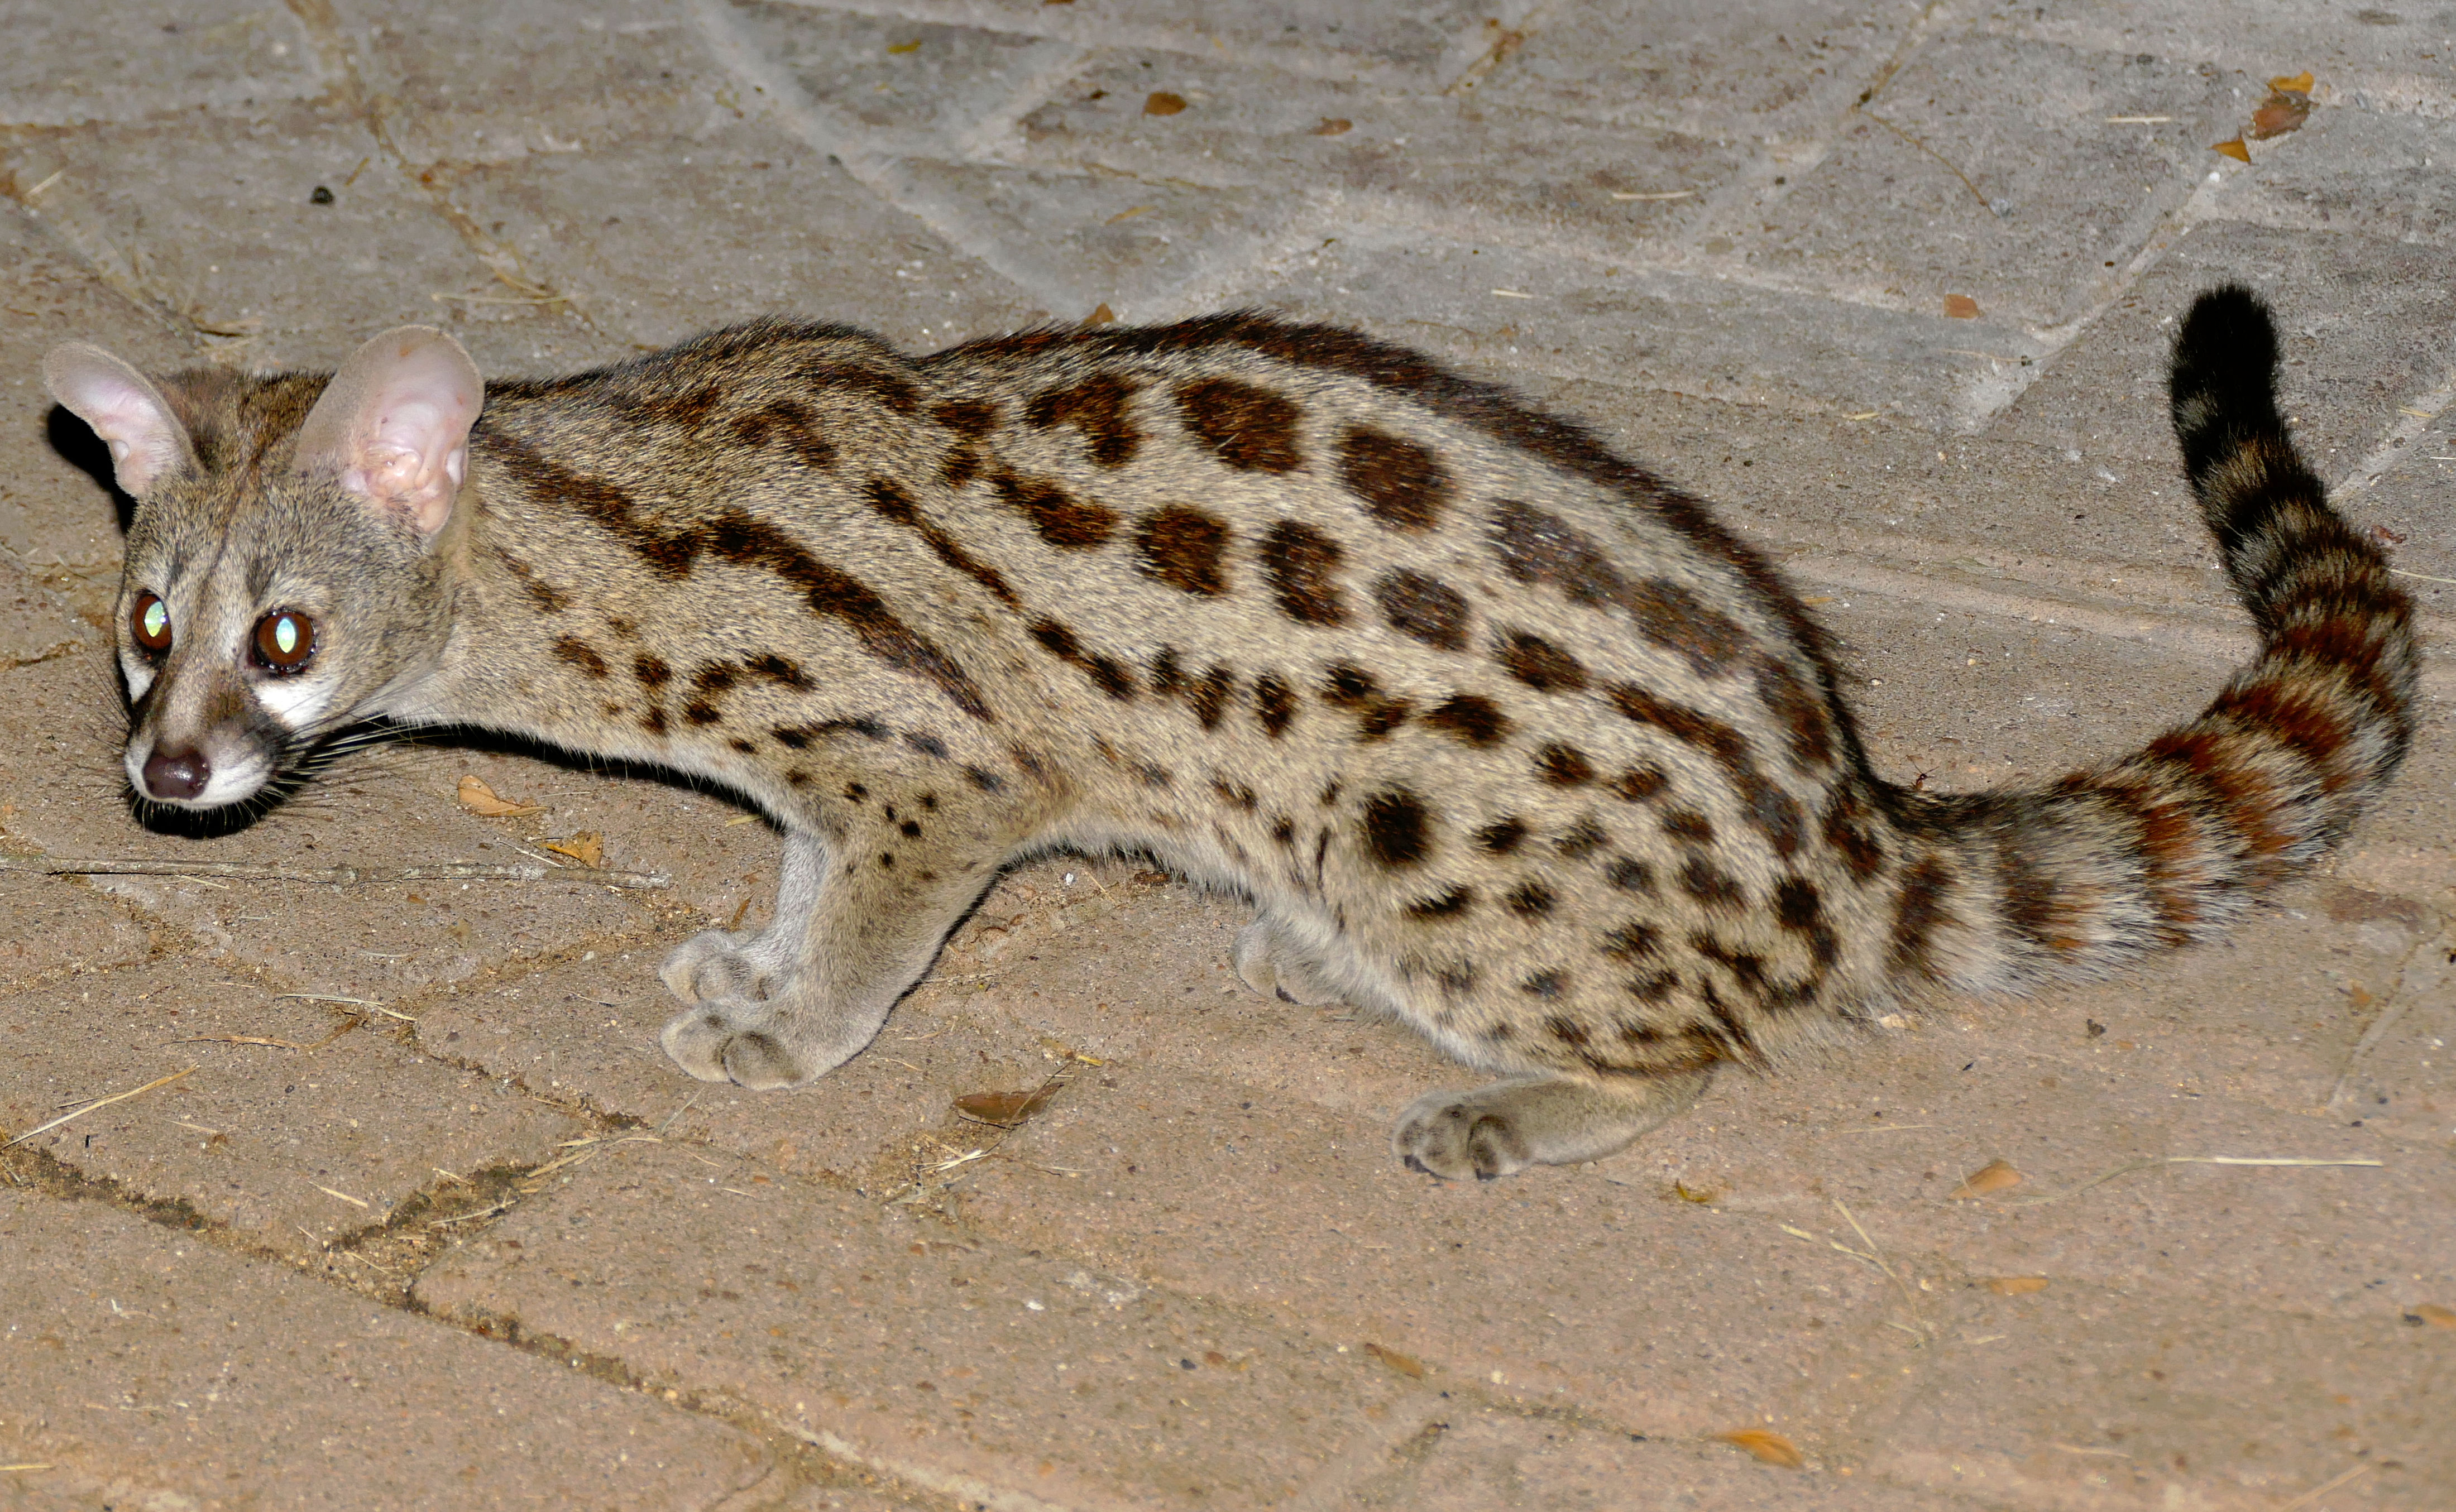 https://upload.wikimedia.org/wikipedia/commons/3/37/Large-spotted_Genet_%28Genetta_tigrina%29_%2817356502041%29_%28crop%29.jpg